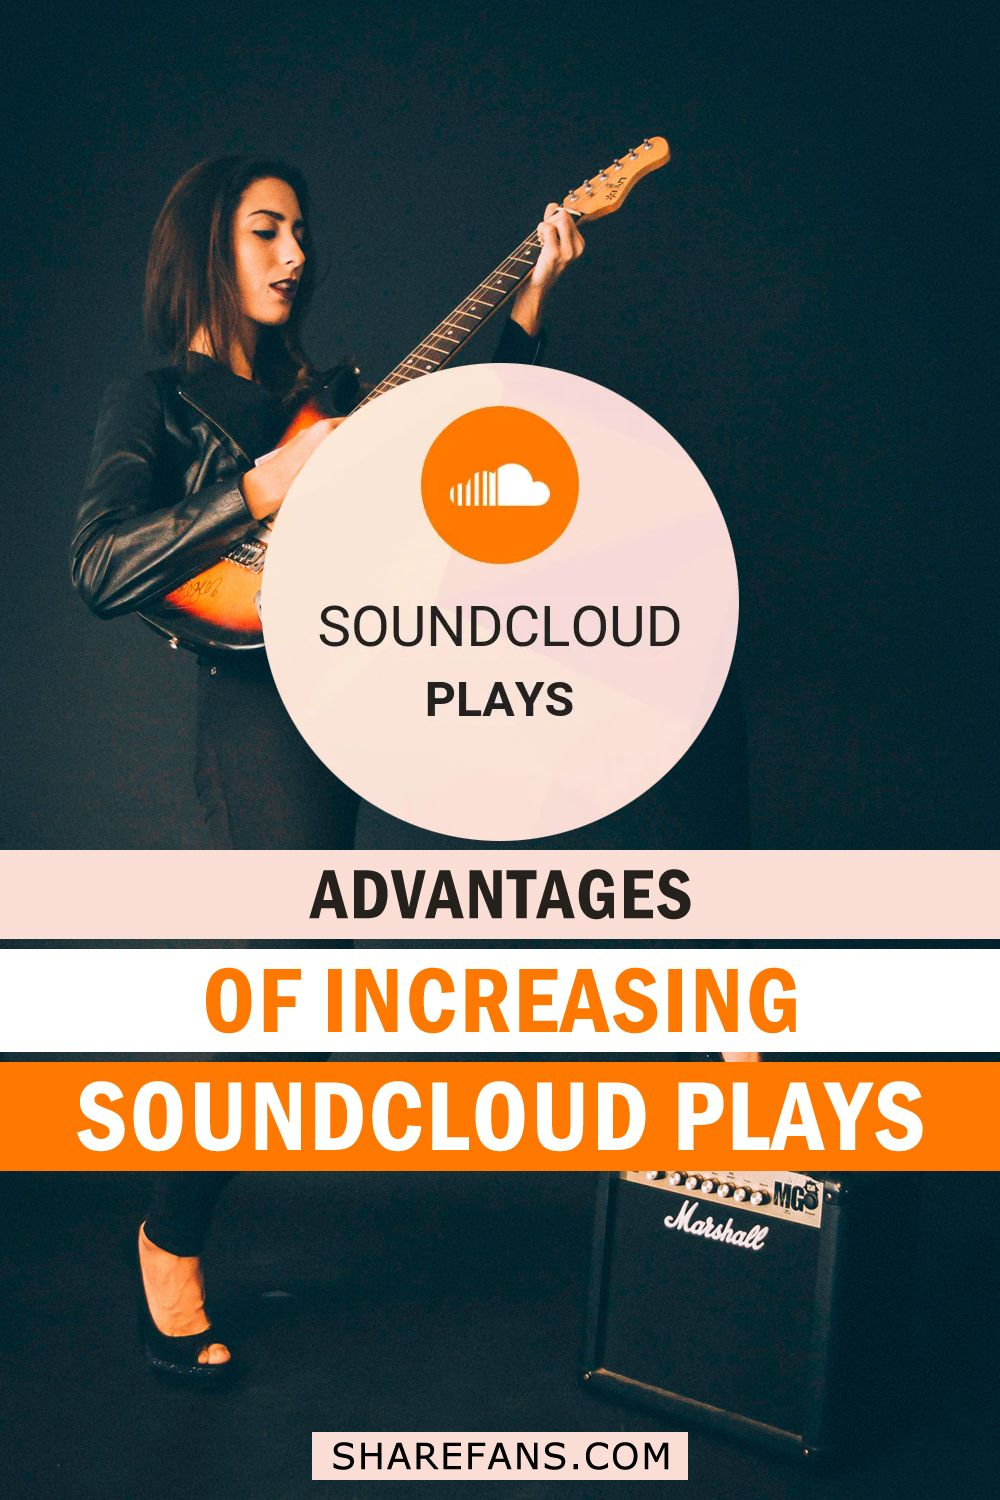 Buy Real Soundcloud Plays at 0.99 Promote Music Online